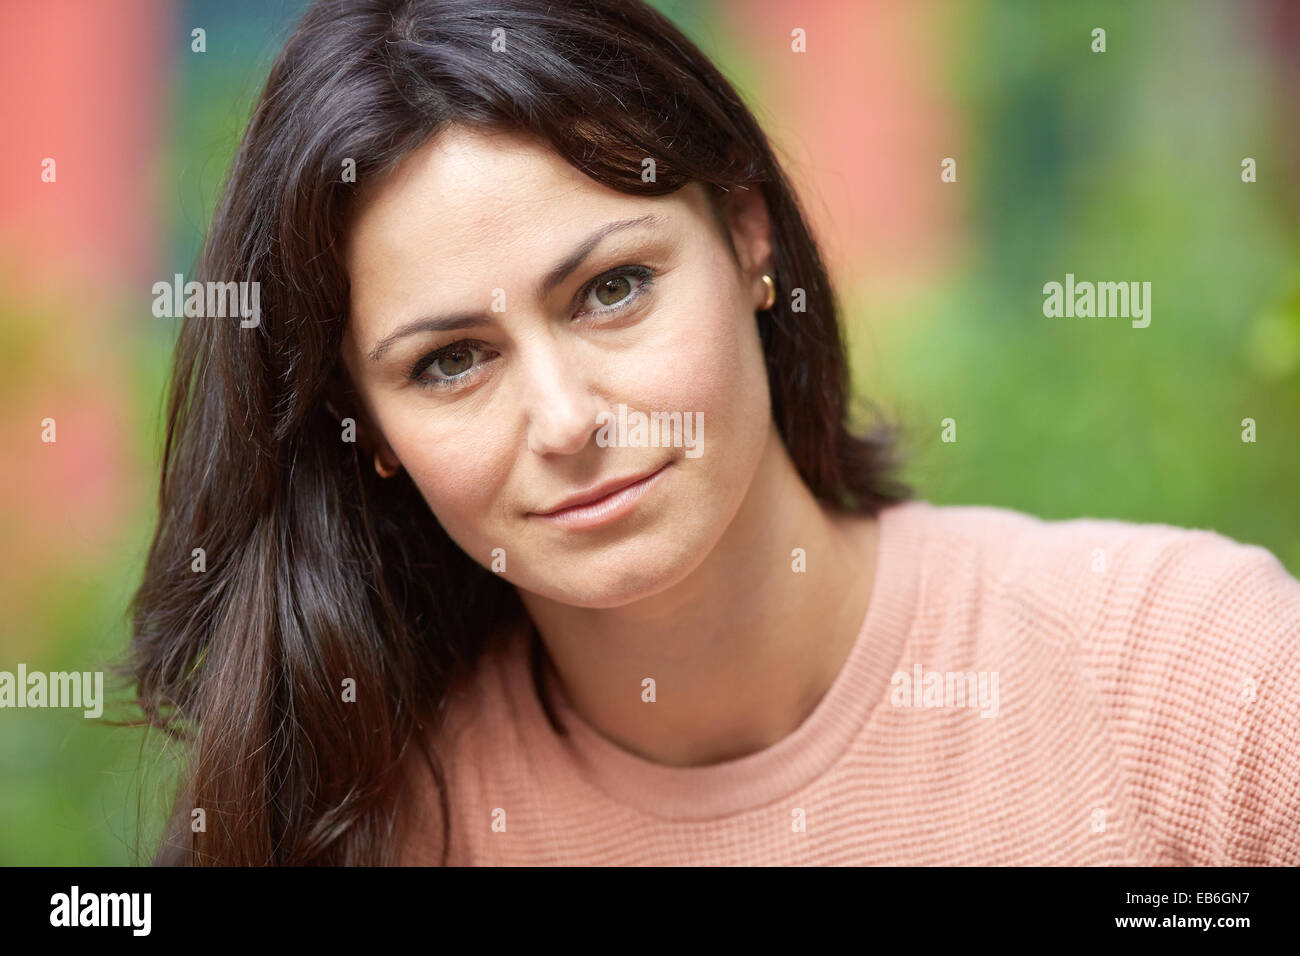 35 year old woman dating